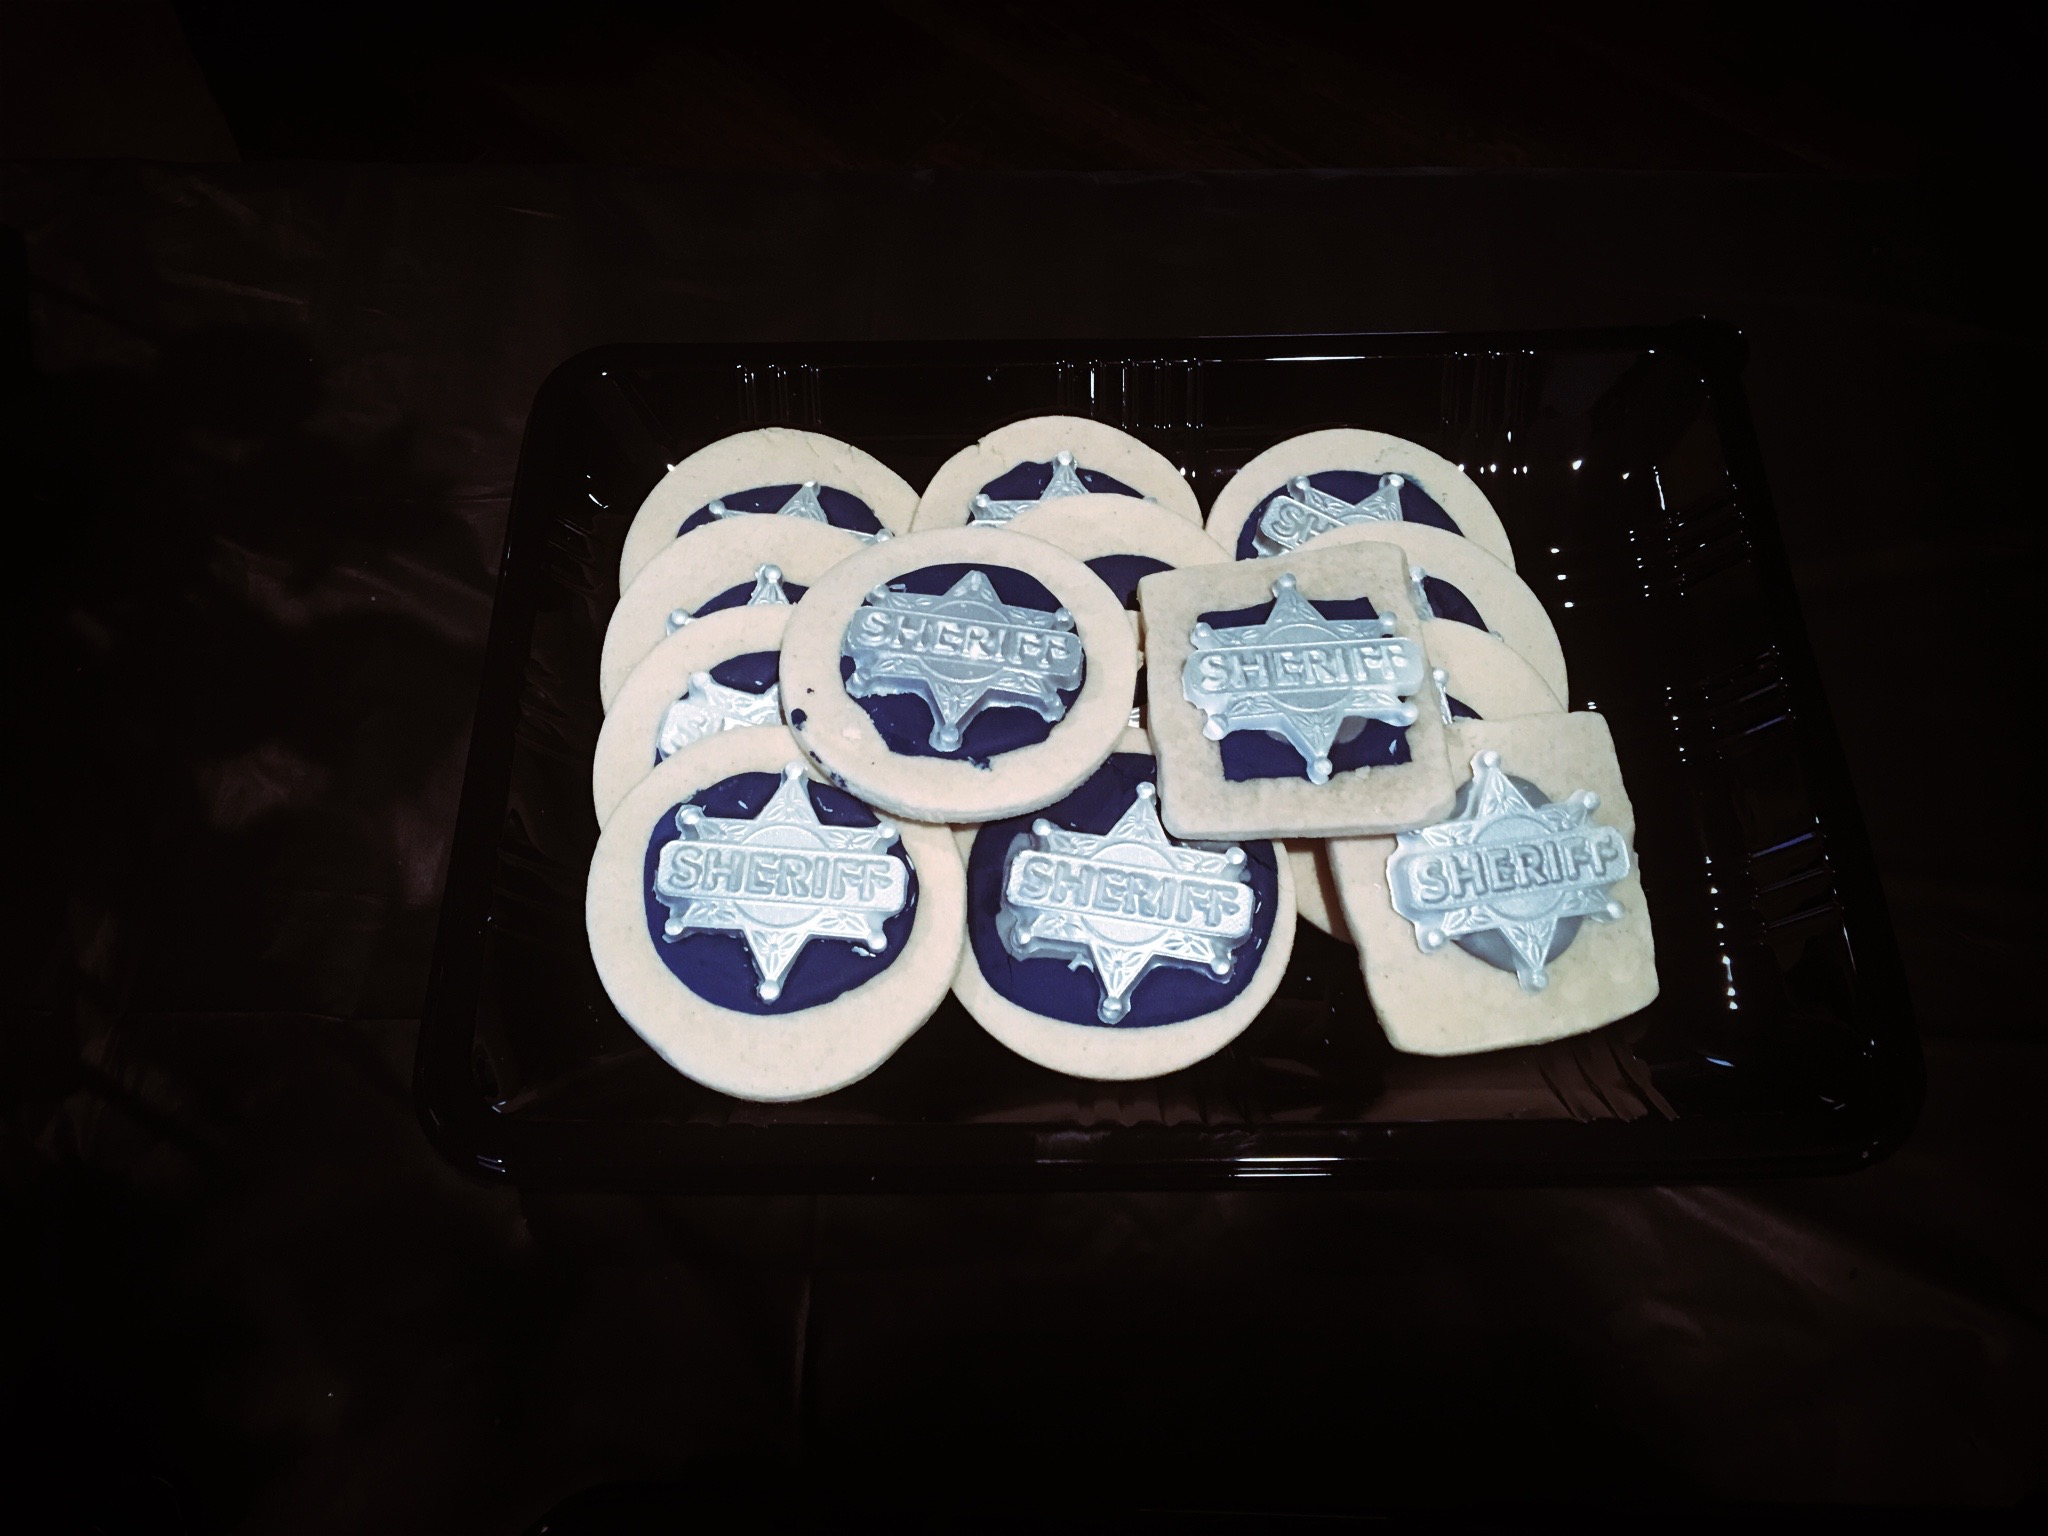 Sheriff Sugar Cookies